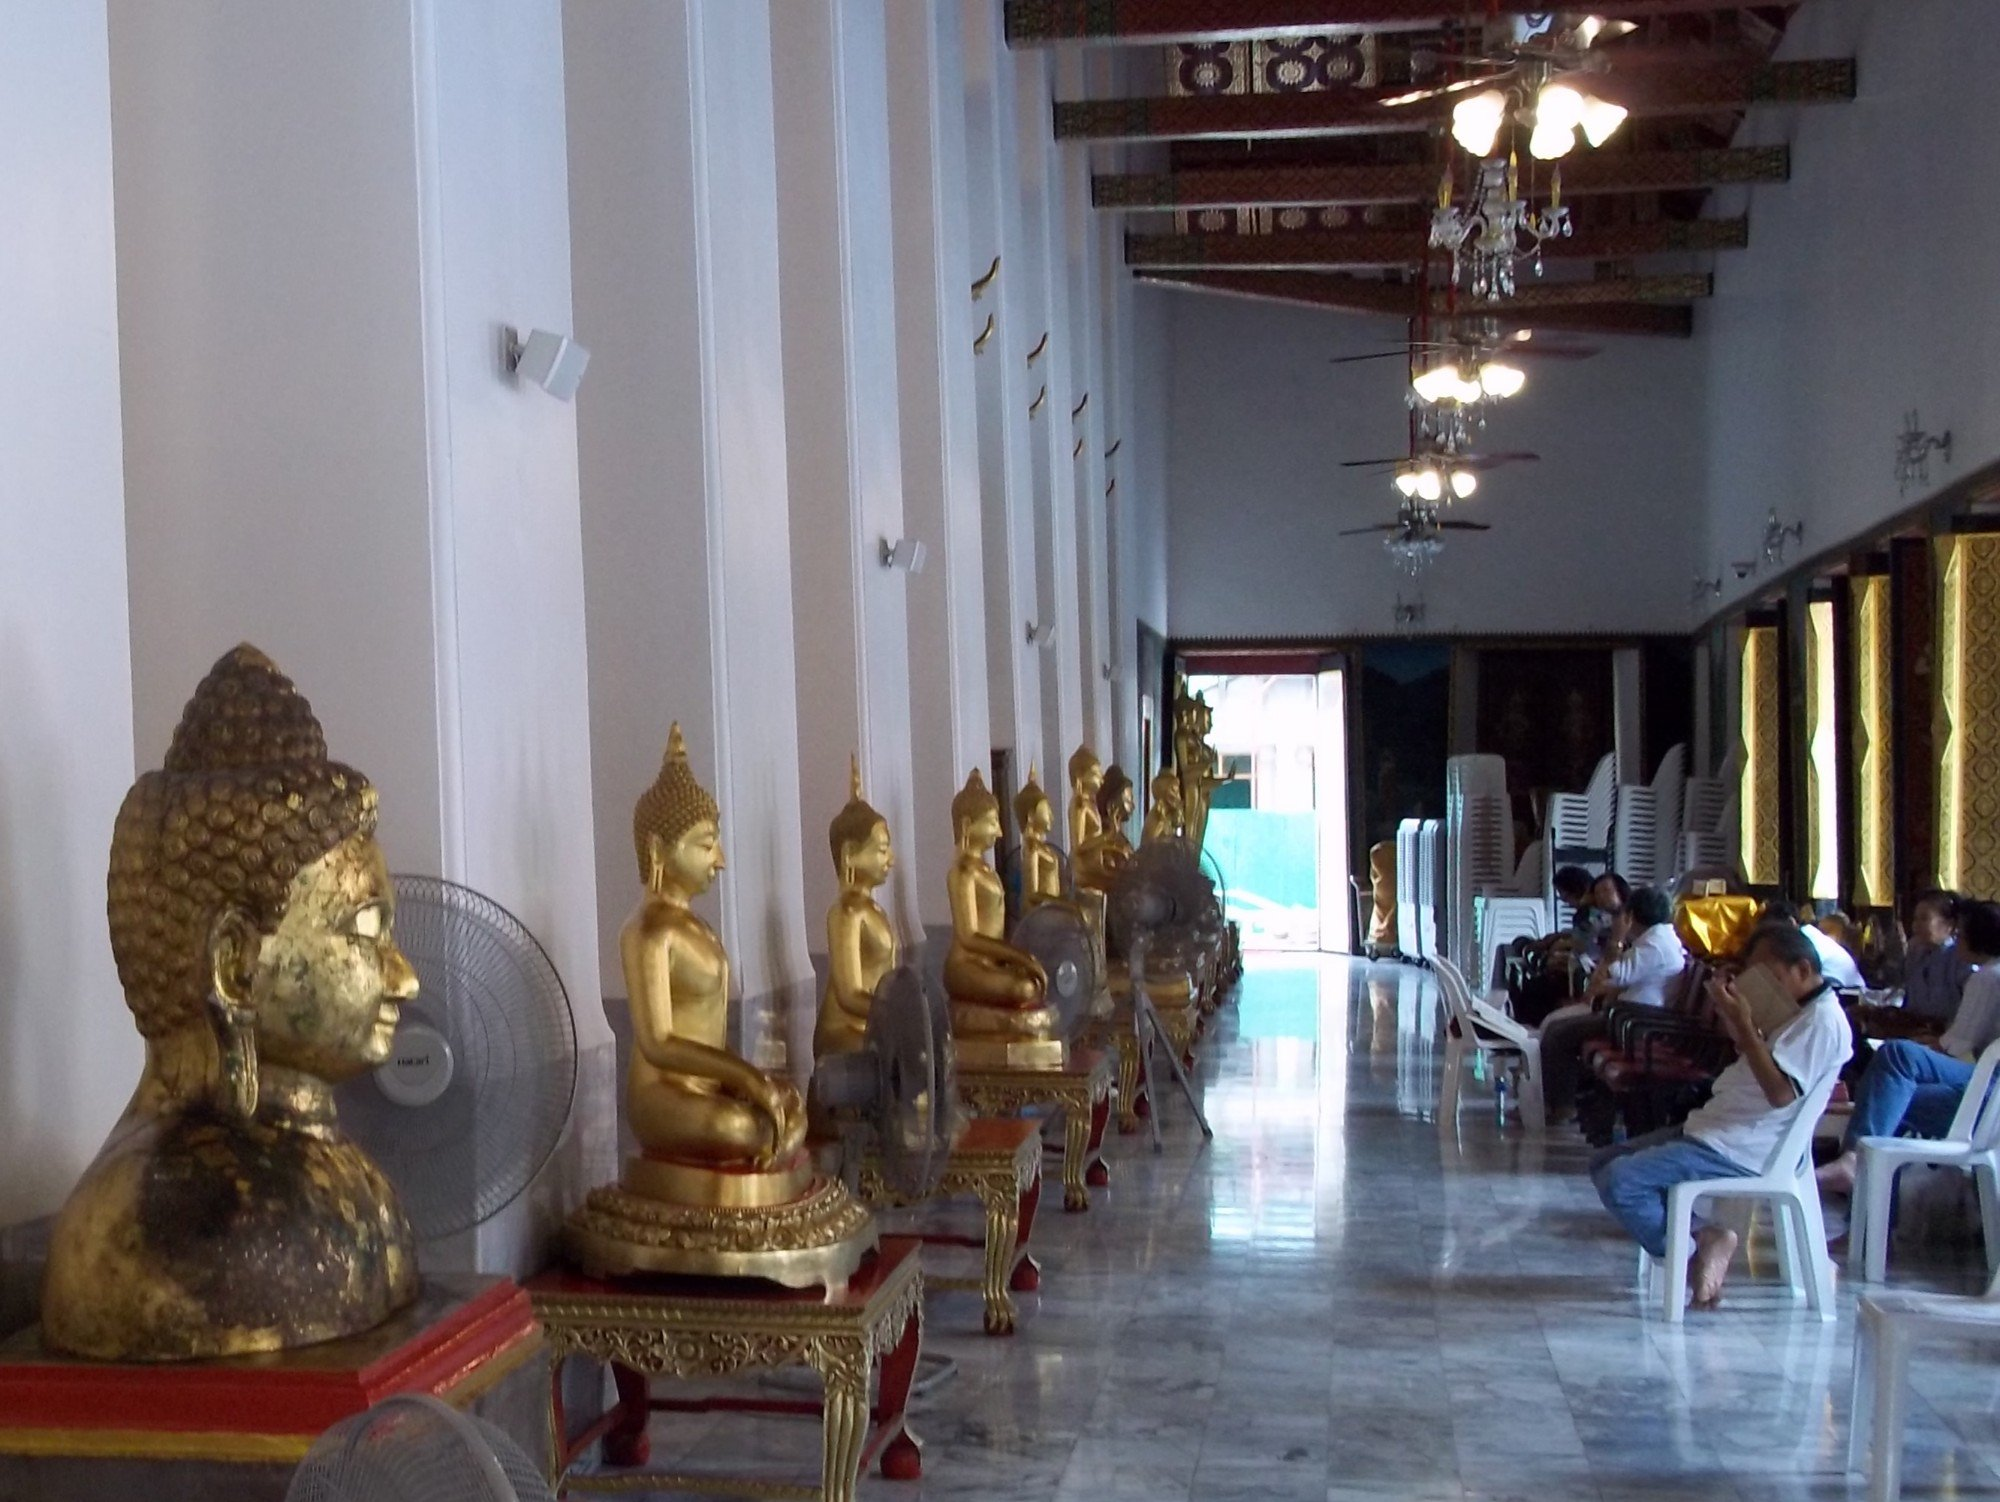 Buddha statues at Wat Chana Songkhram